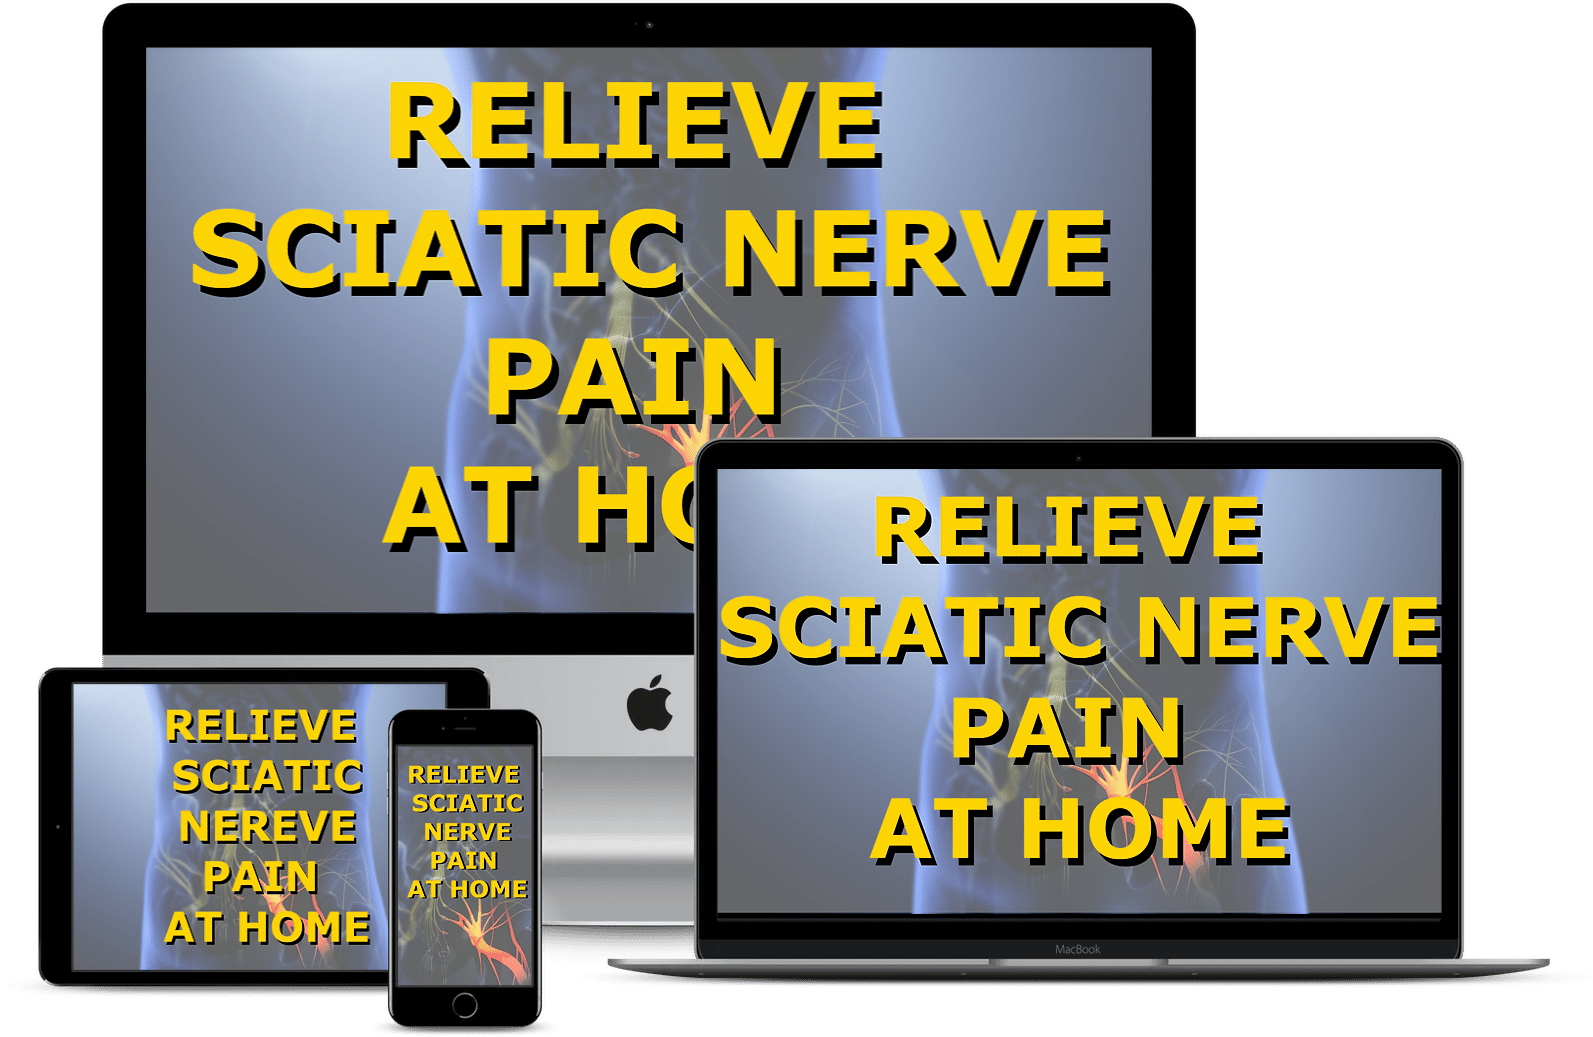 How To Relieve Sciatic Nerve Pain At Home